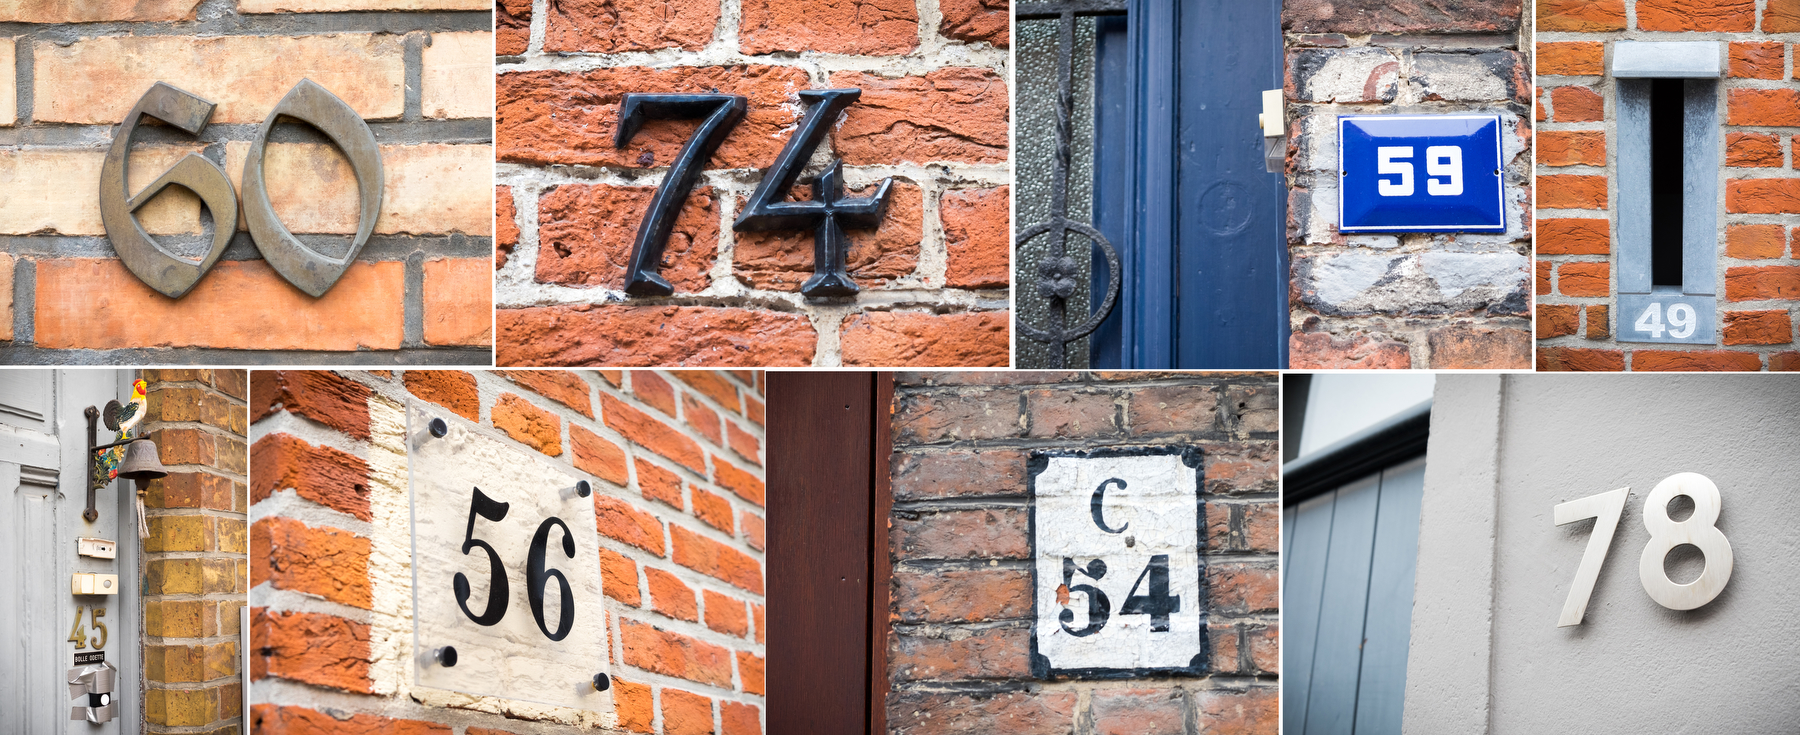 I loved the variety of style in the numbering on houses. Here's a collection in Bruges